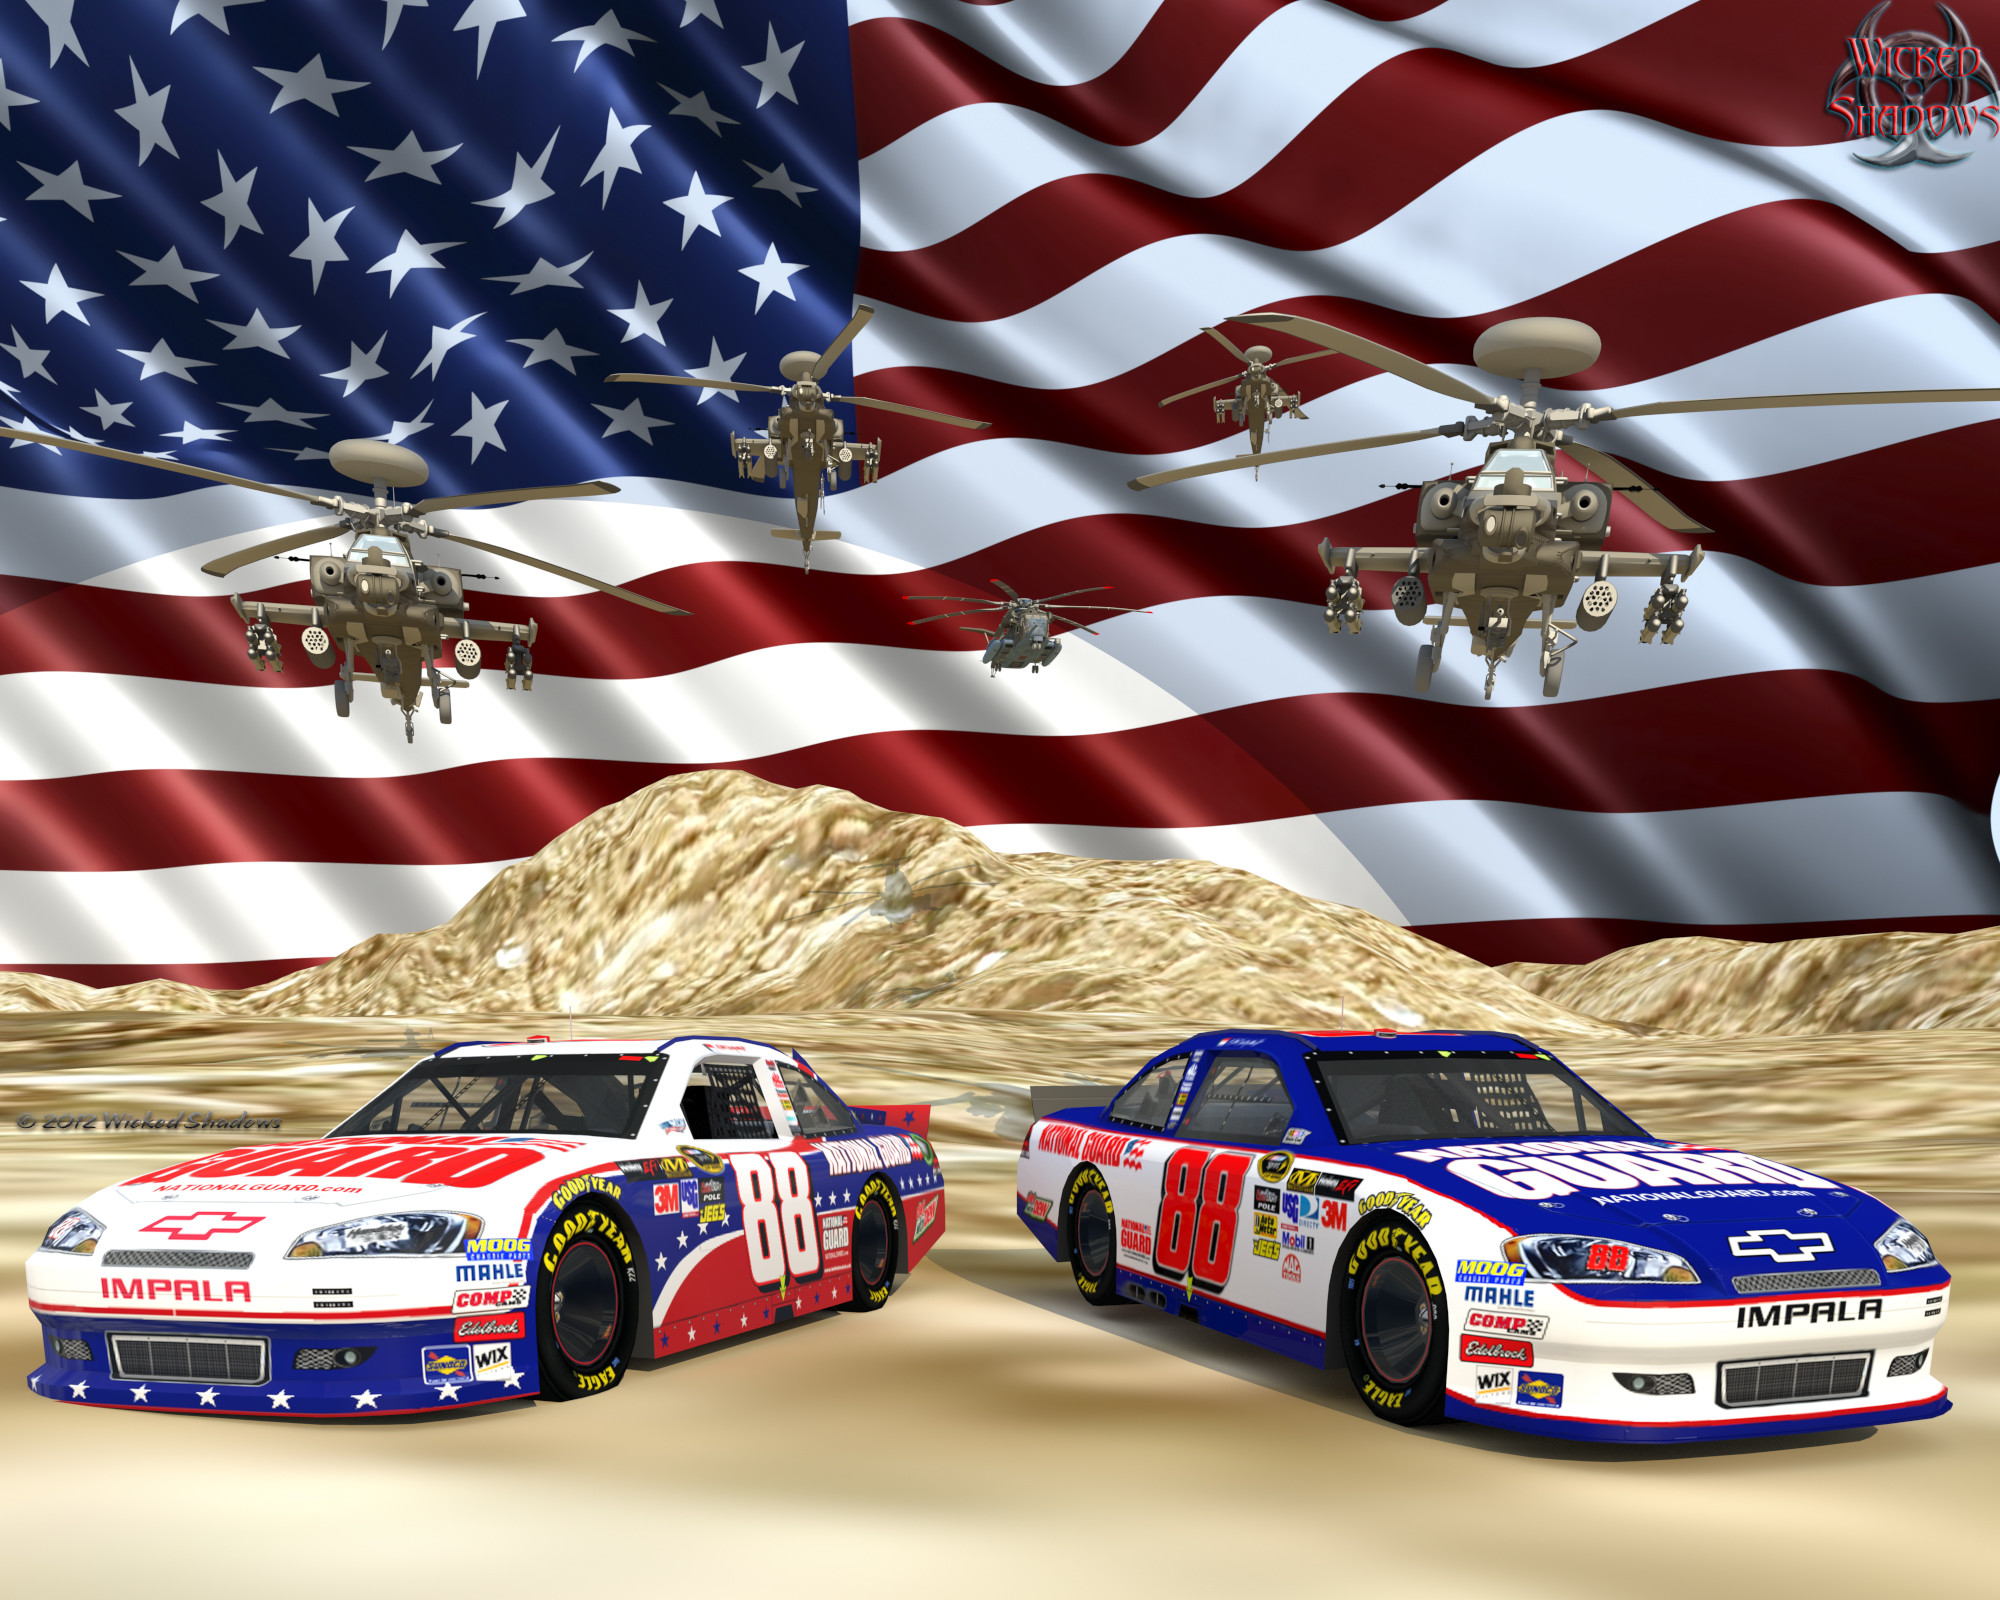 2000x1600 le Dale Earnhardt Jr. Nascar Unites National Guard Ver. 2 Wallpaper  Facebook Cover Photo | 4x3 | 5x4 ...